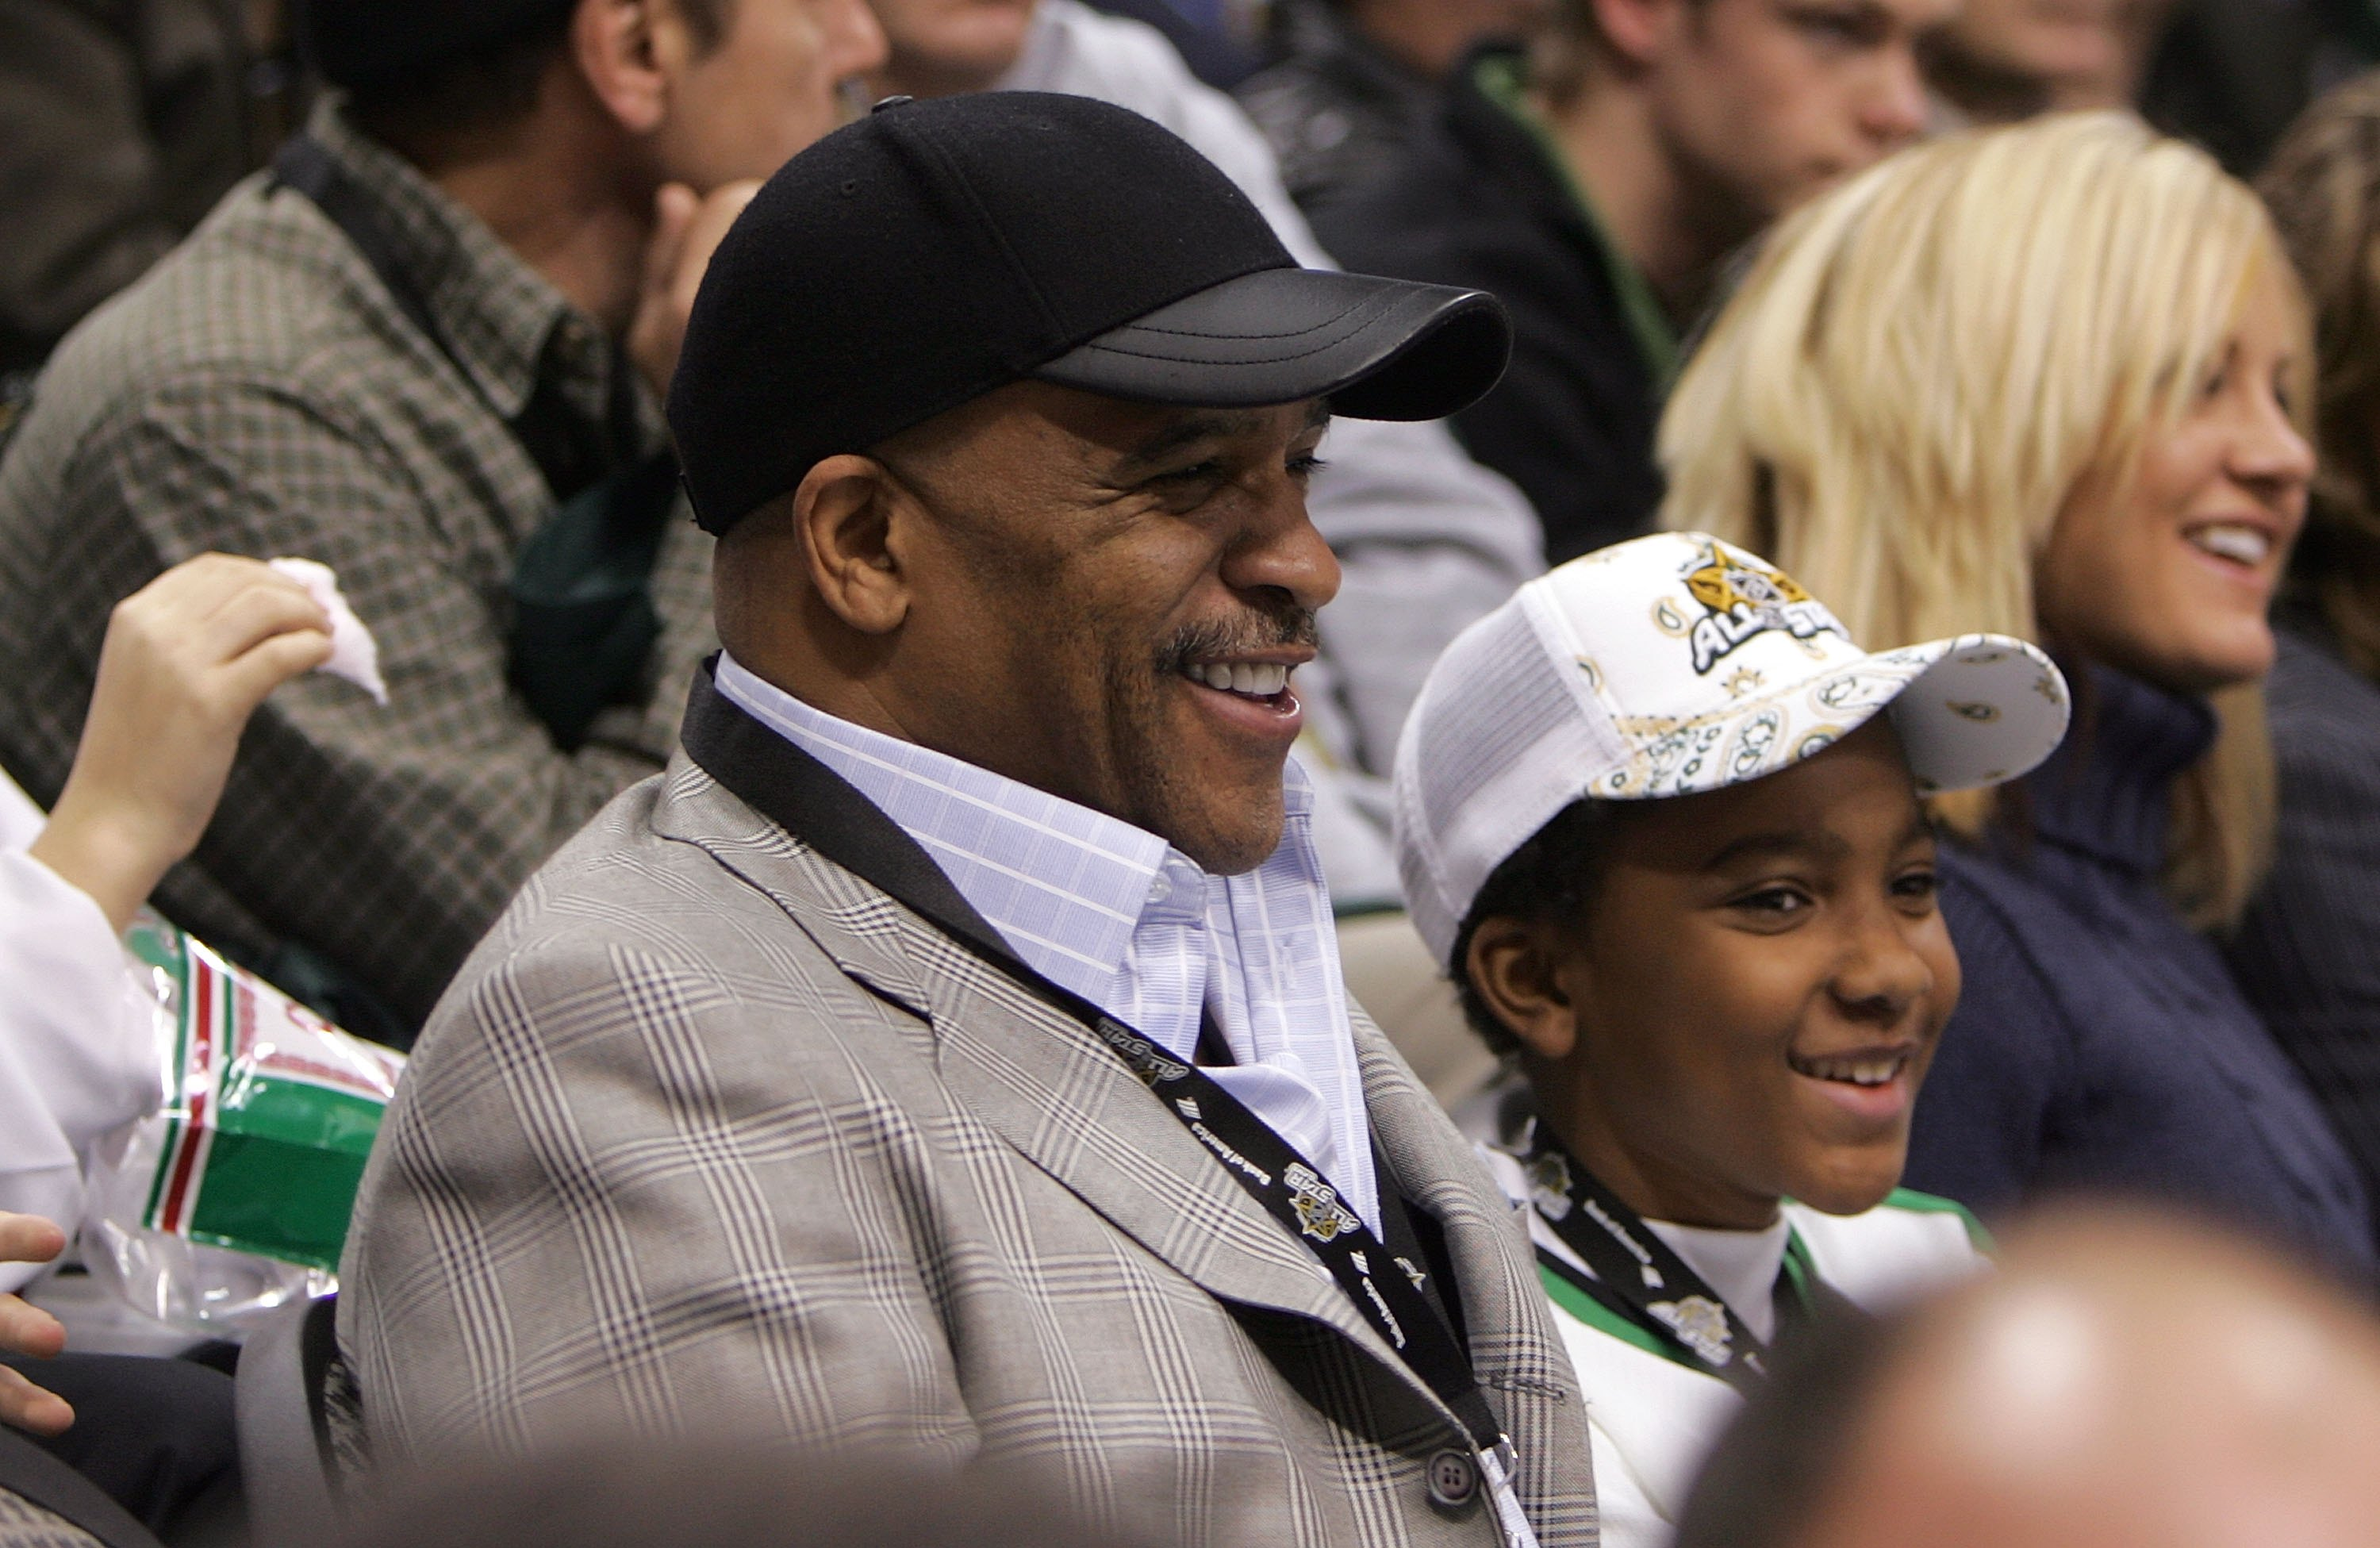 DALLAS - JANUARY 24:  Former Dallas Cowboy Drew Pearson attends the 2007 NHL All-Star Game at American Airlines Center on January 24, 2007 in Dallas, Texas.  (Photo by Bruce Bennett/Getty Images)